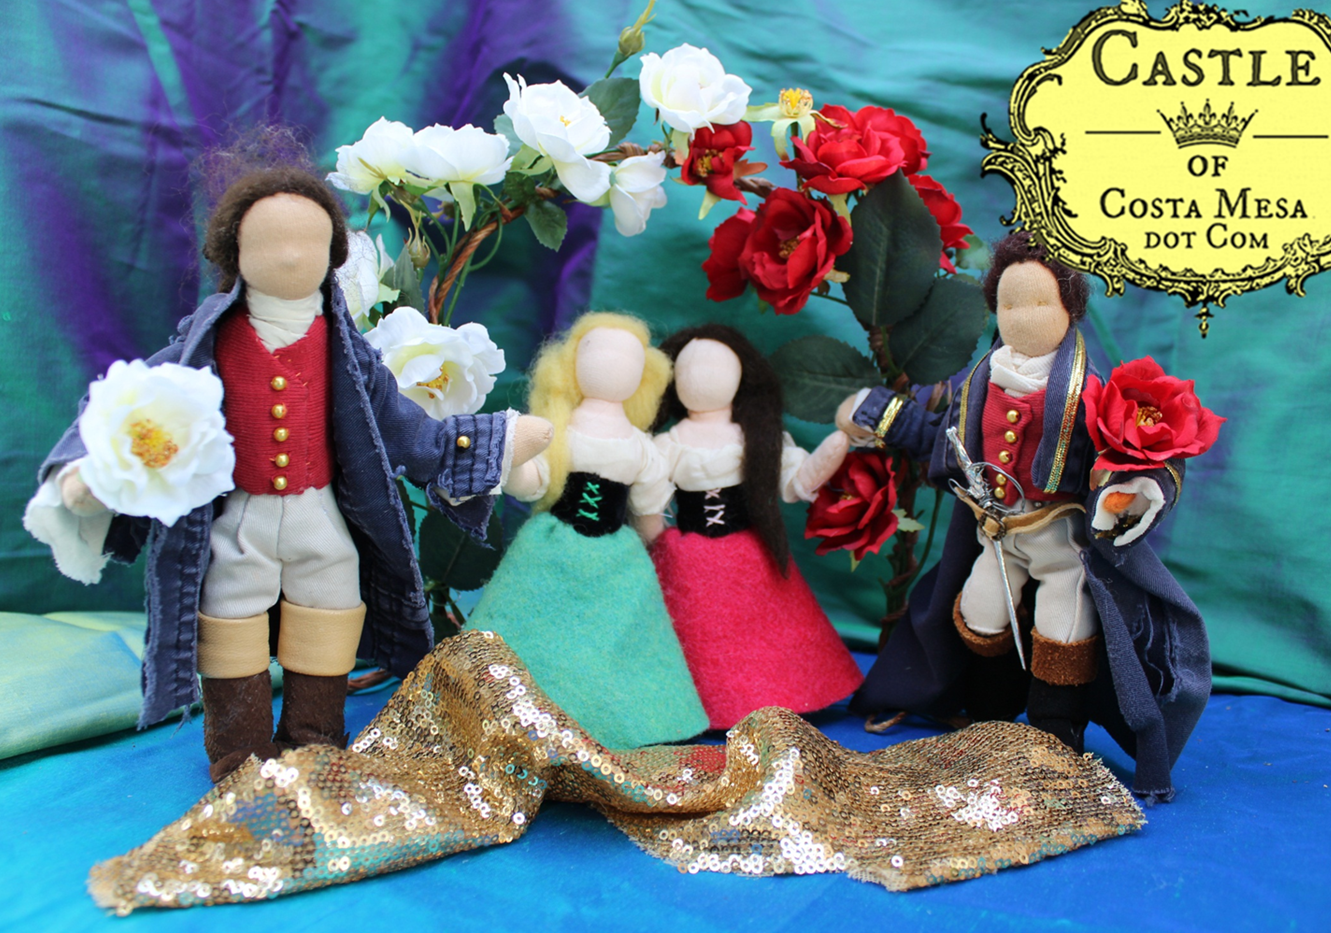 Snow White and Rose Red wedding scene. Handmade and homespun puppet theatre by CastleofCostaMesa.com